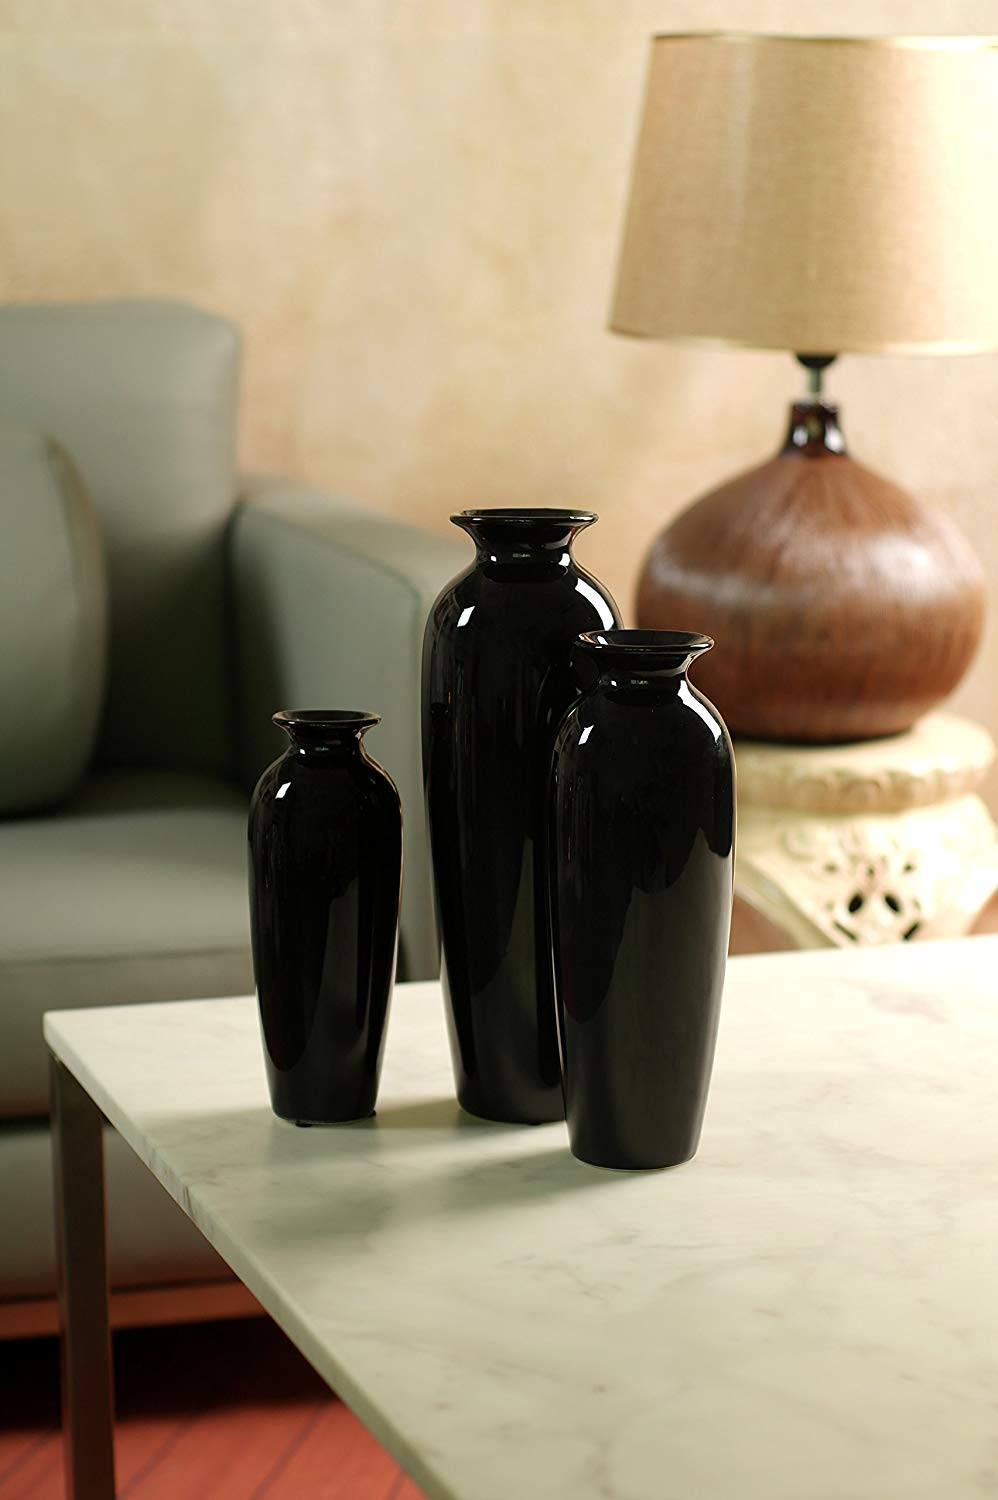 elegant expressions by hosley vase of amazon de hosleys elegant expressions set of 3 black ceramic vases with regard to amazon de hosleys elegant expressions set of 3 black ceramic vases in gift box box of 1 set by